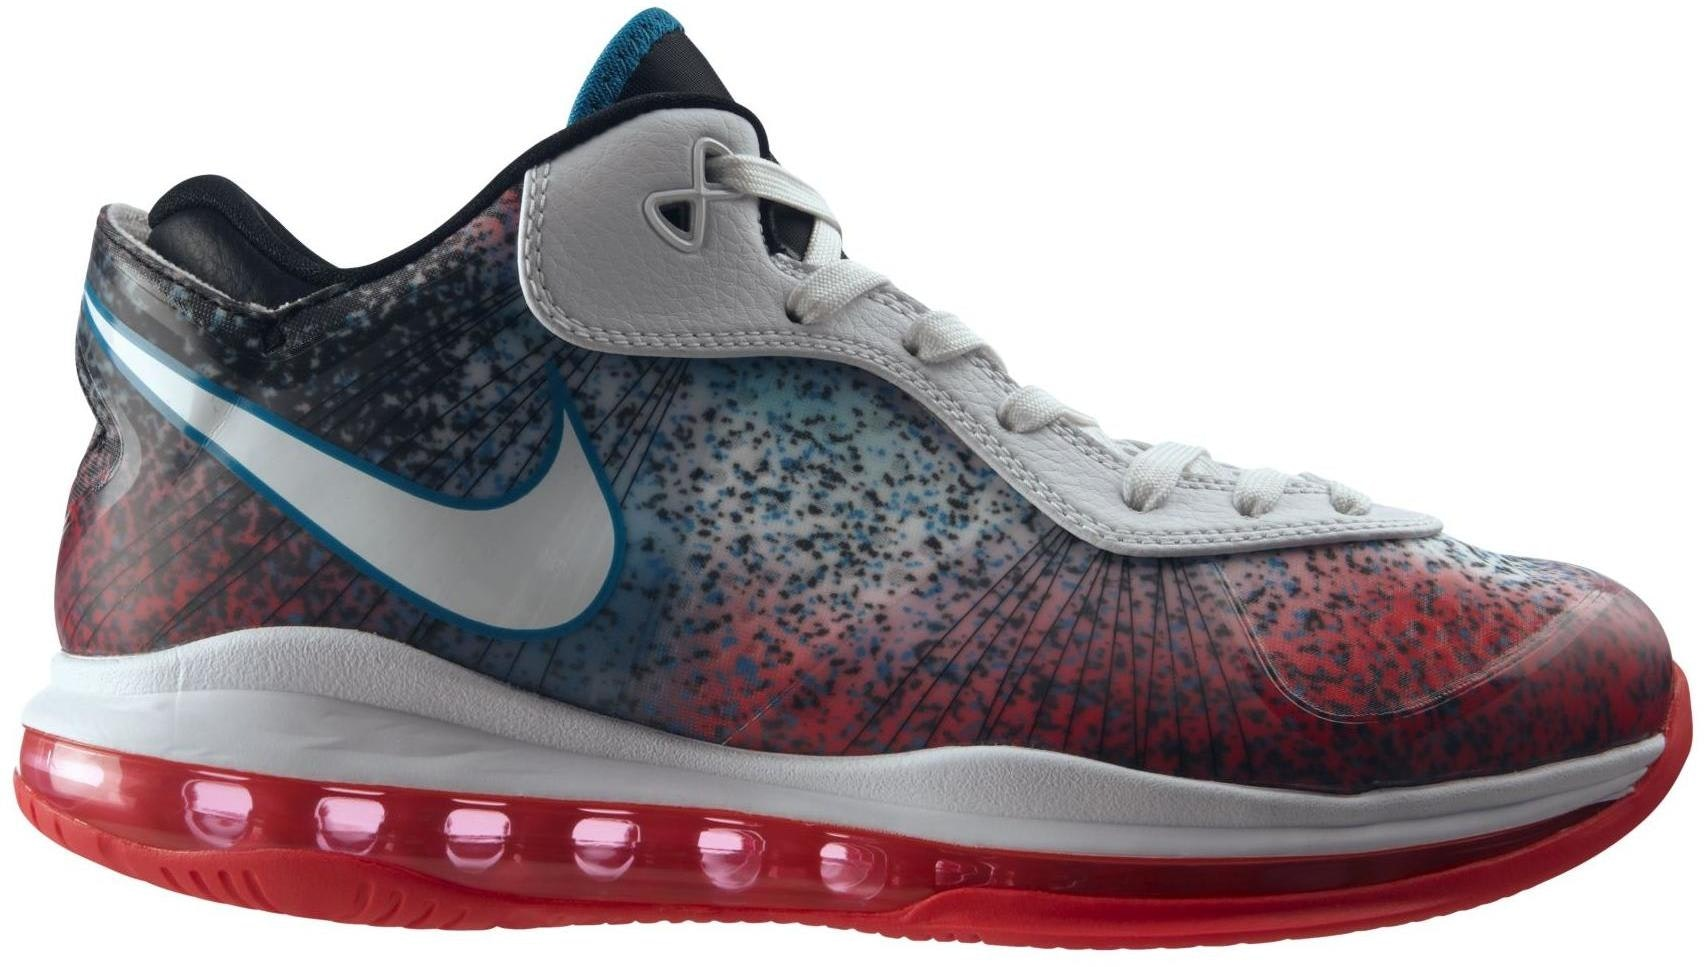 lebron 8 low. lebron 8 v/2 low miami nights lebron o